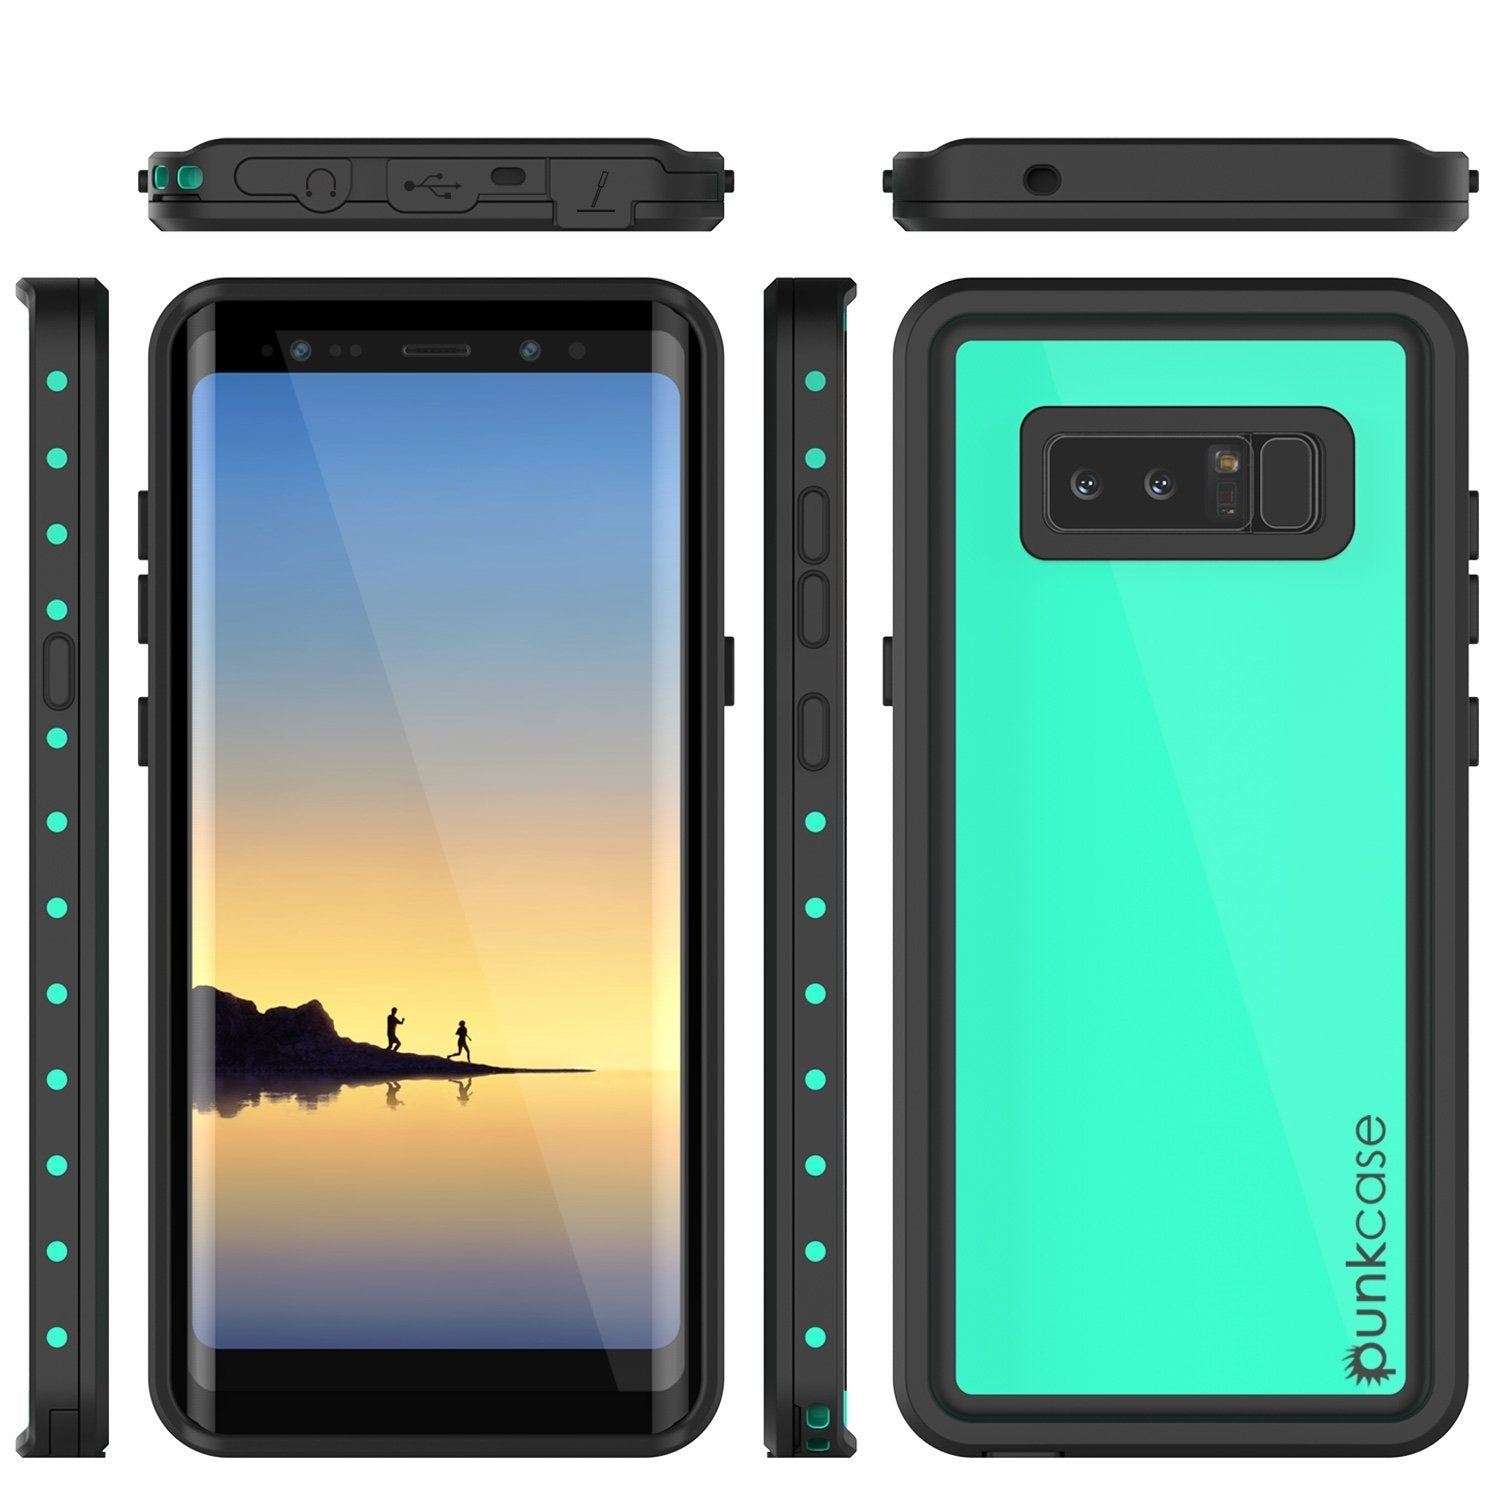 Note 8 Waterproof Case PunkCase StudStar Teal Thin 6.6ft Underwater IP68 Shock/Snow Proof